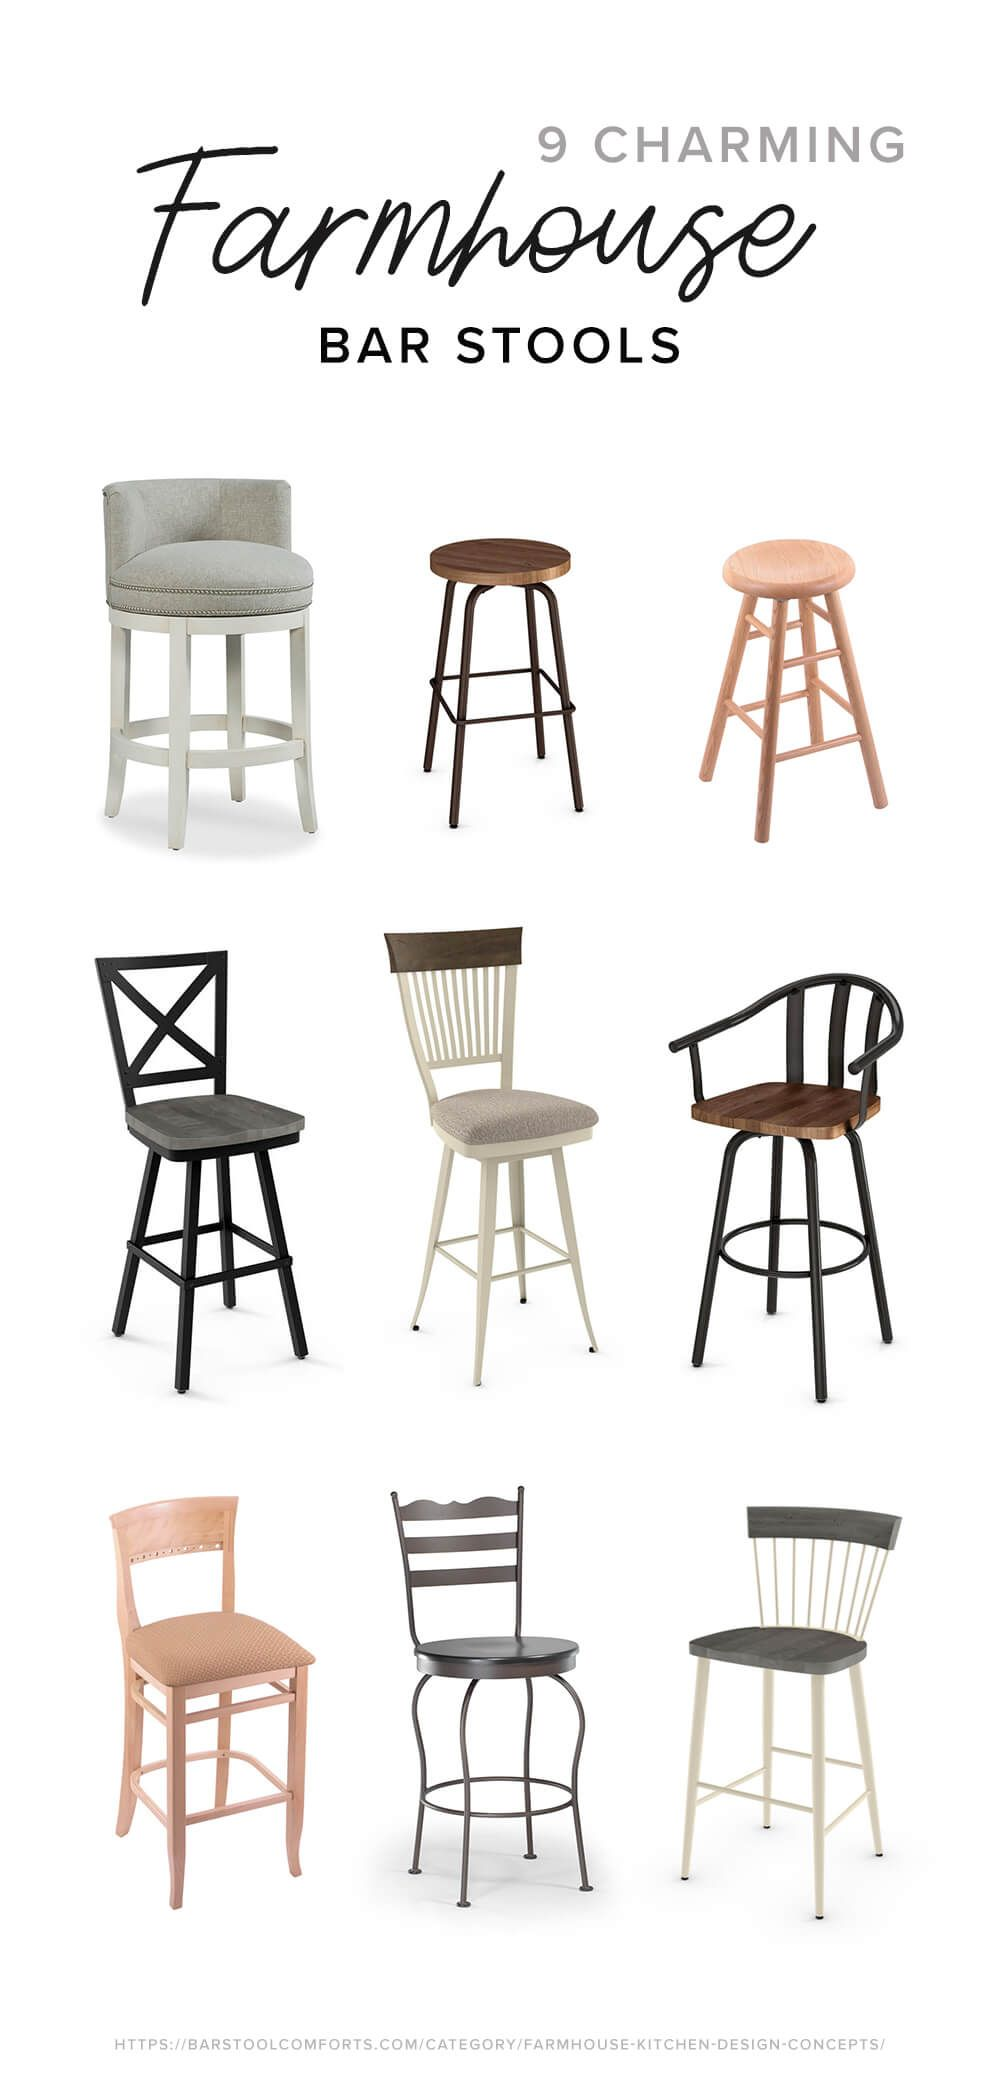 9 Charming Farmhouse Bar Stools For 2019 Barstool Comforts Farmhouse Bar Stools Farmhouse Style Bar Stools Bar Stools